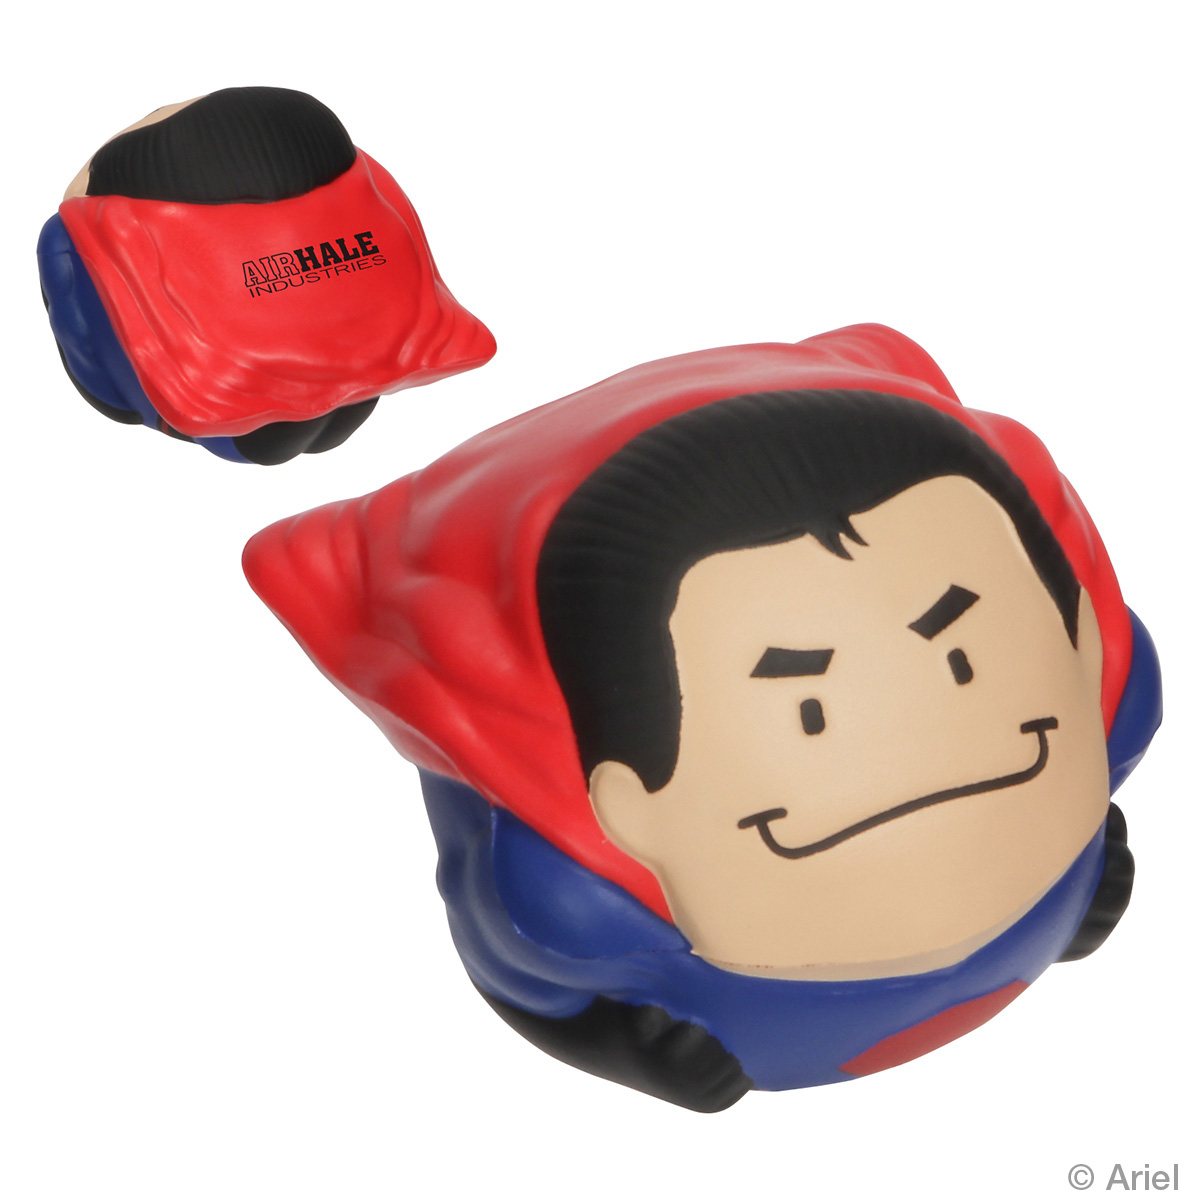 Super Hero Wobbler Stress Reliever, LWO-SH12 - 1 Colour Imprint